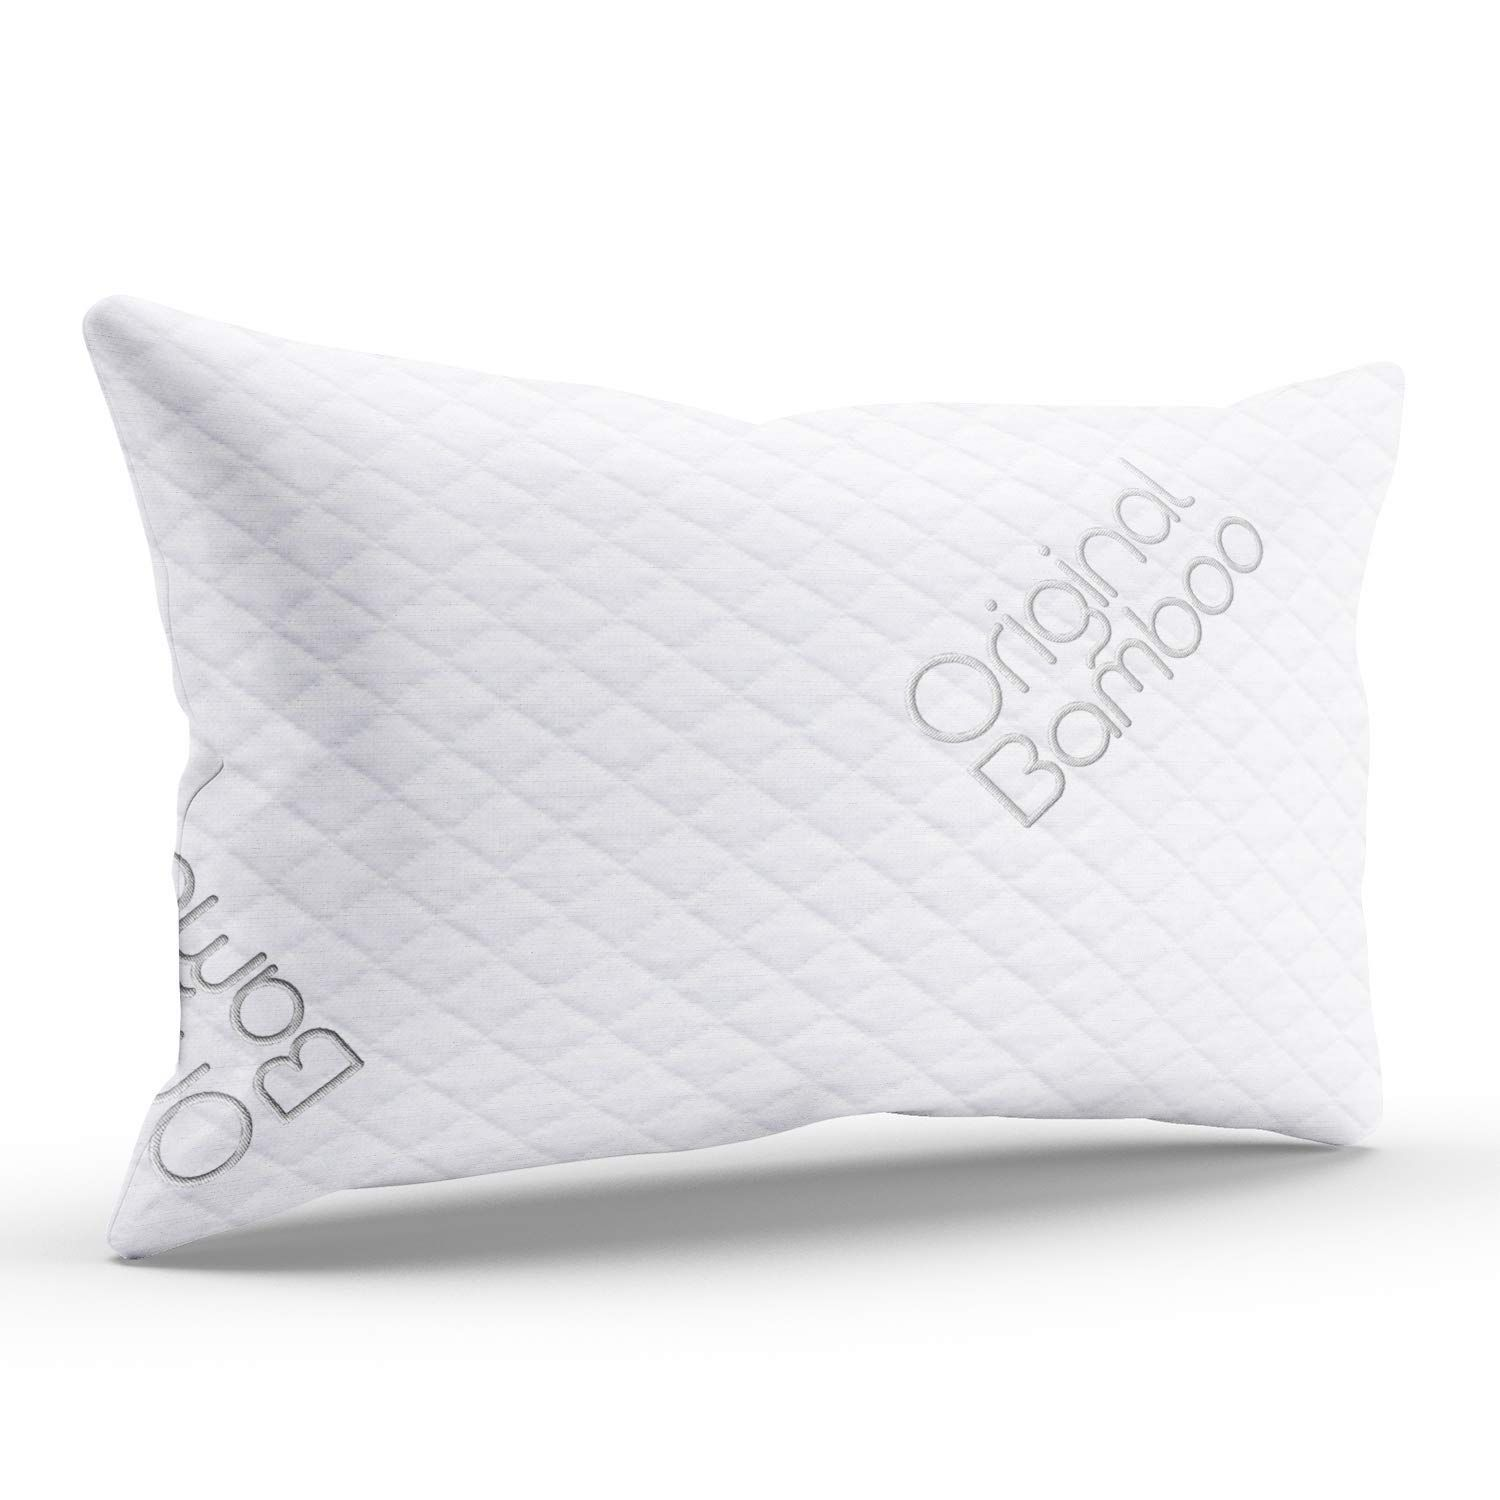 11 Of The Very Best Pillows To Buy Right Now Best Pillow Best